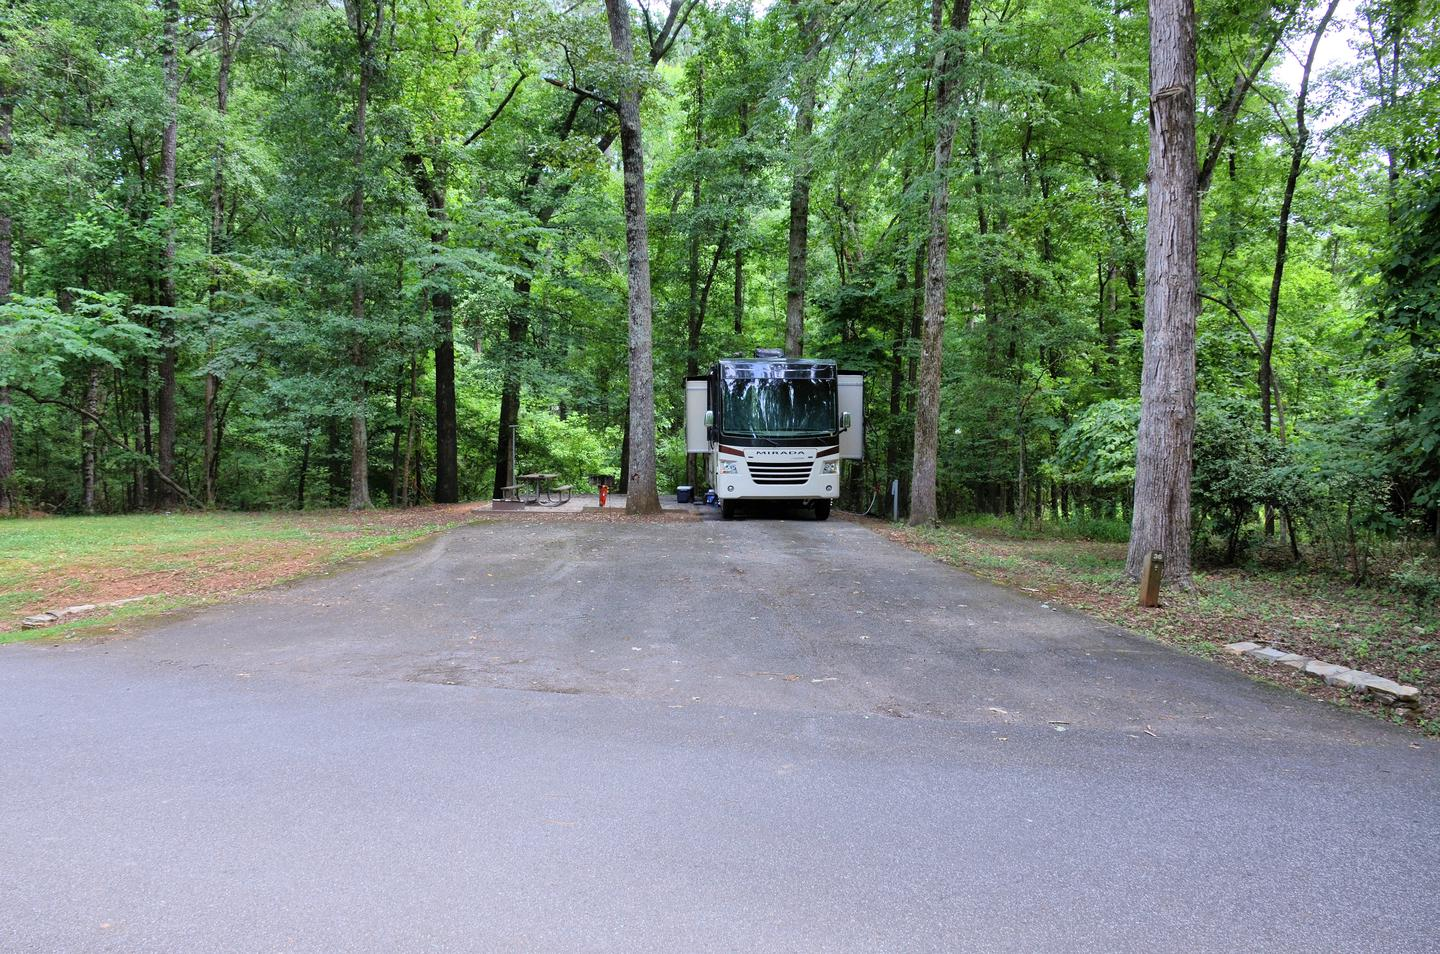 Driveway slopeVictoria Campground, campsite 36